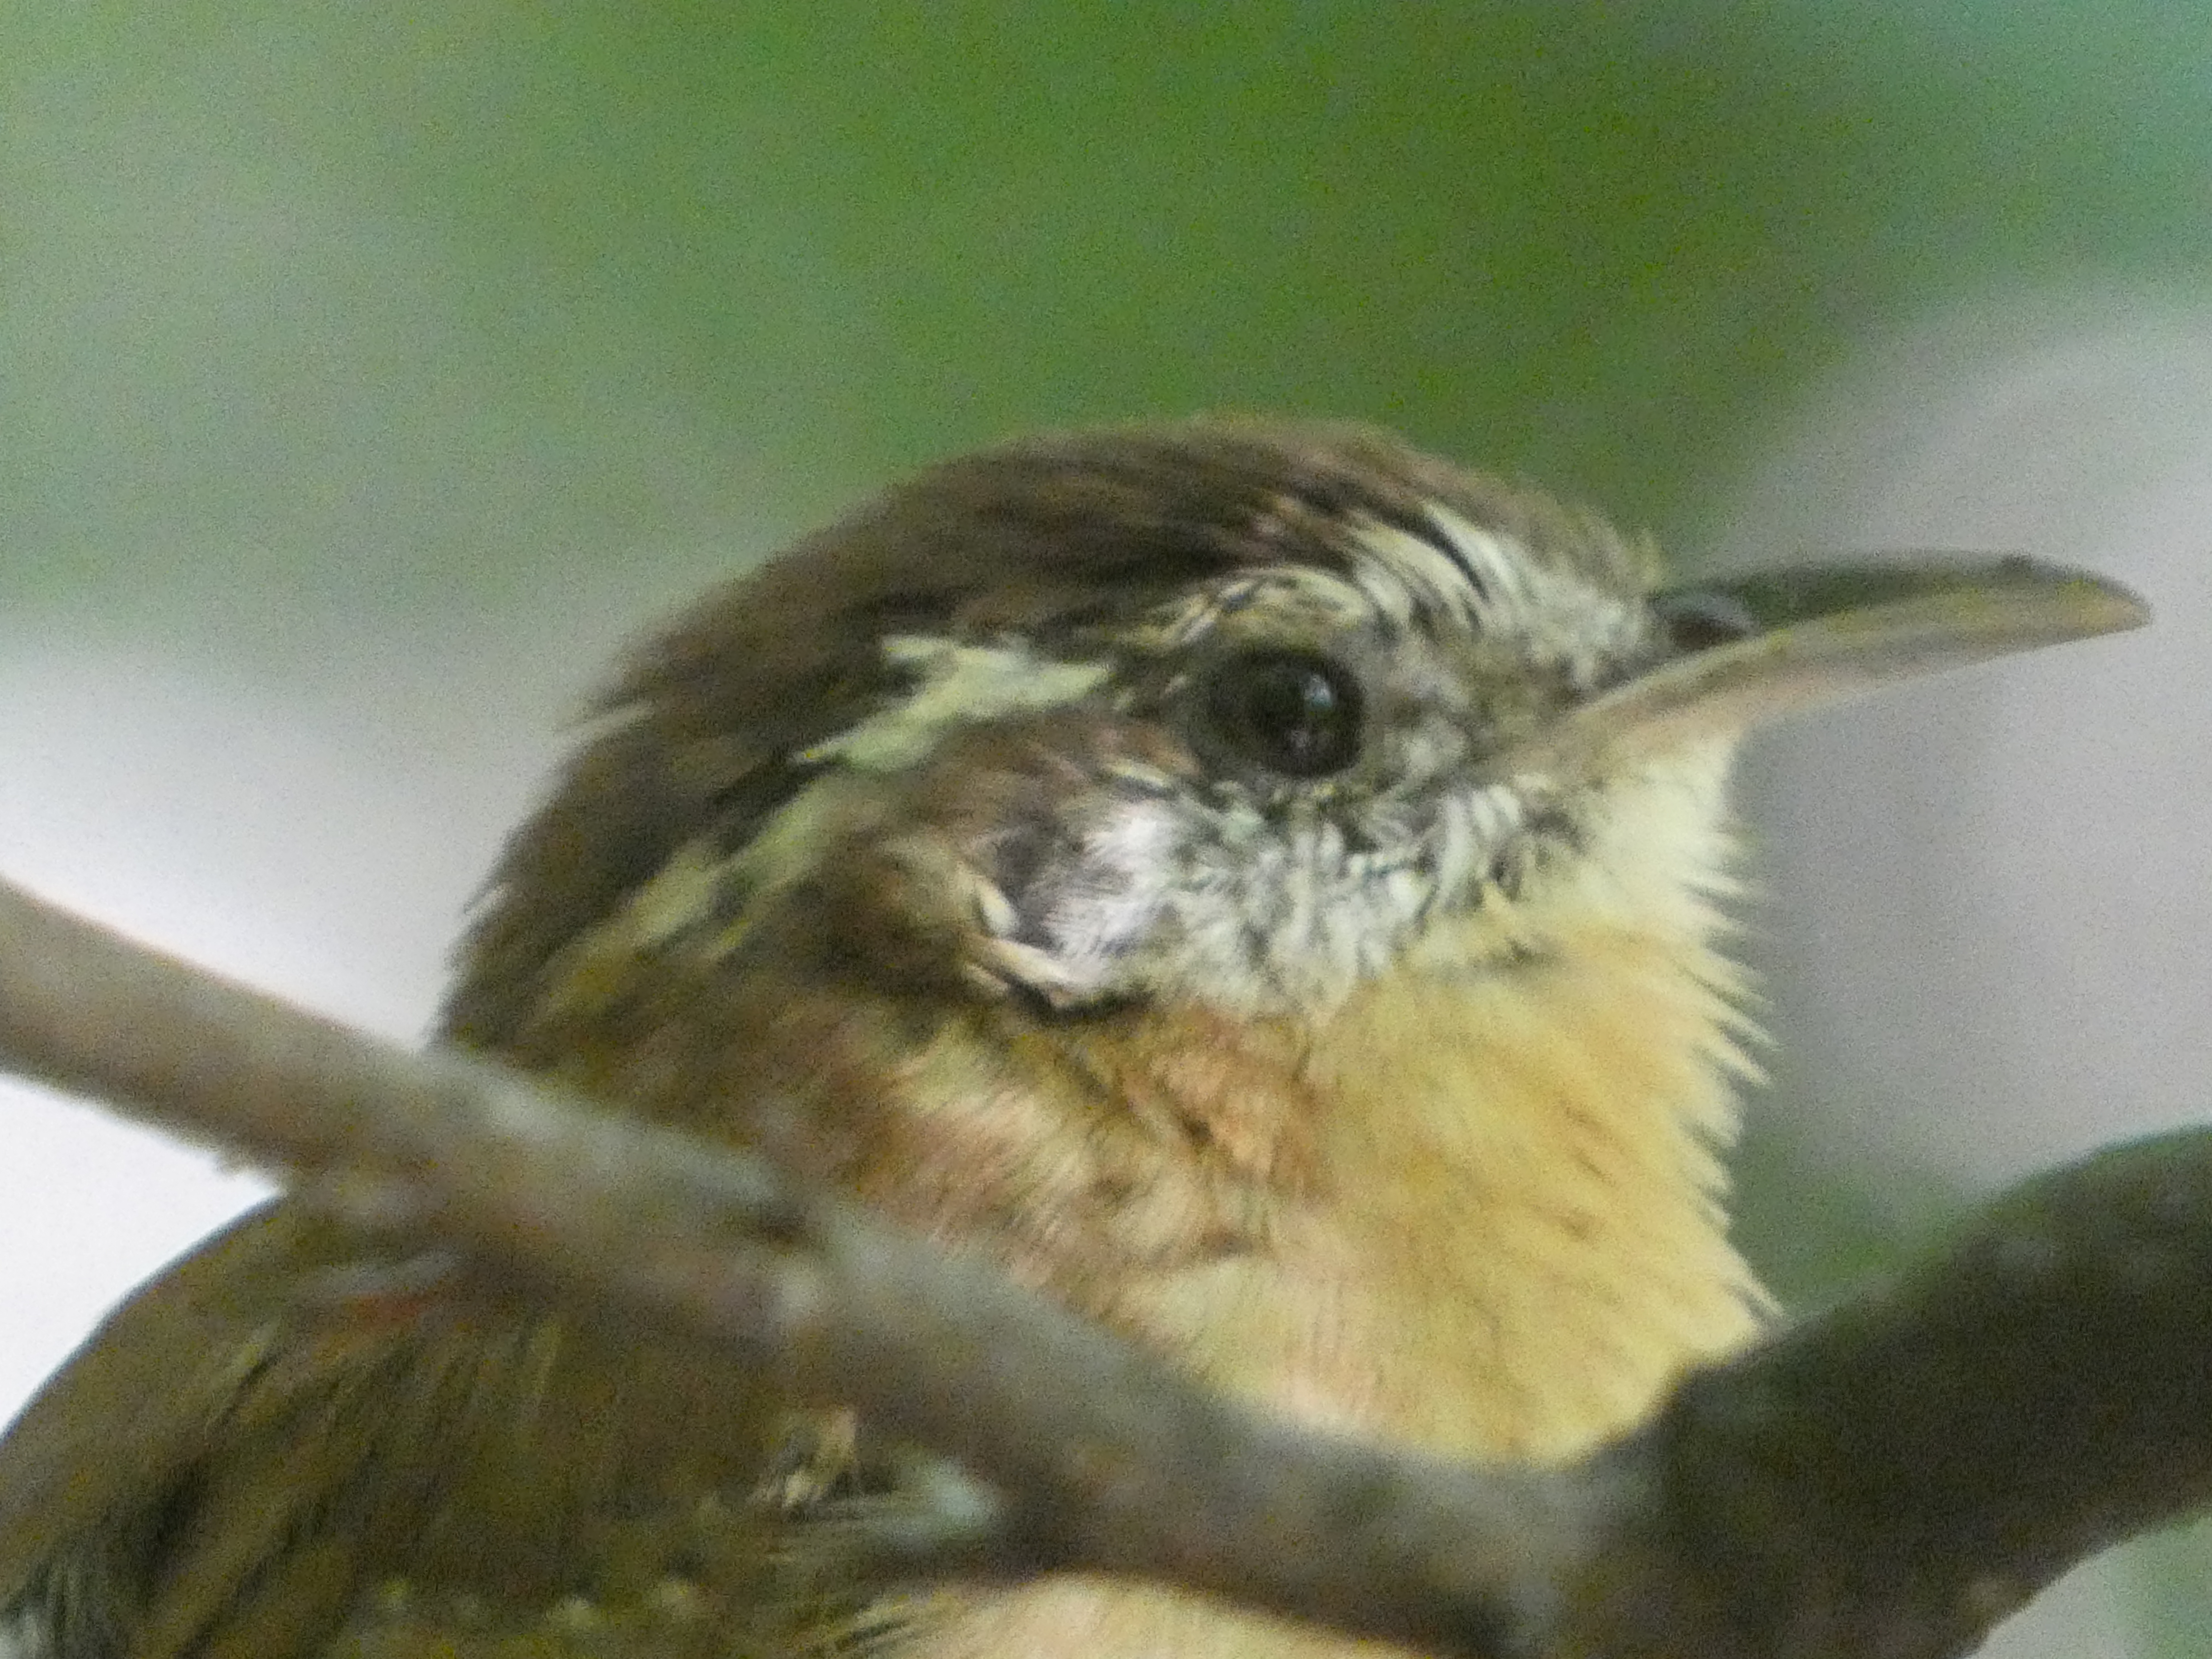 The cutest loudmouth in the woods. Do a YouTube search to hear their song, and I'll bet you've heard it a thousand times. Now you know it's a Carolina Wren with those pipes!